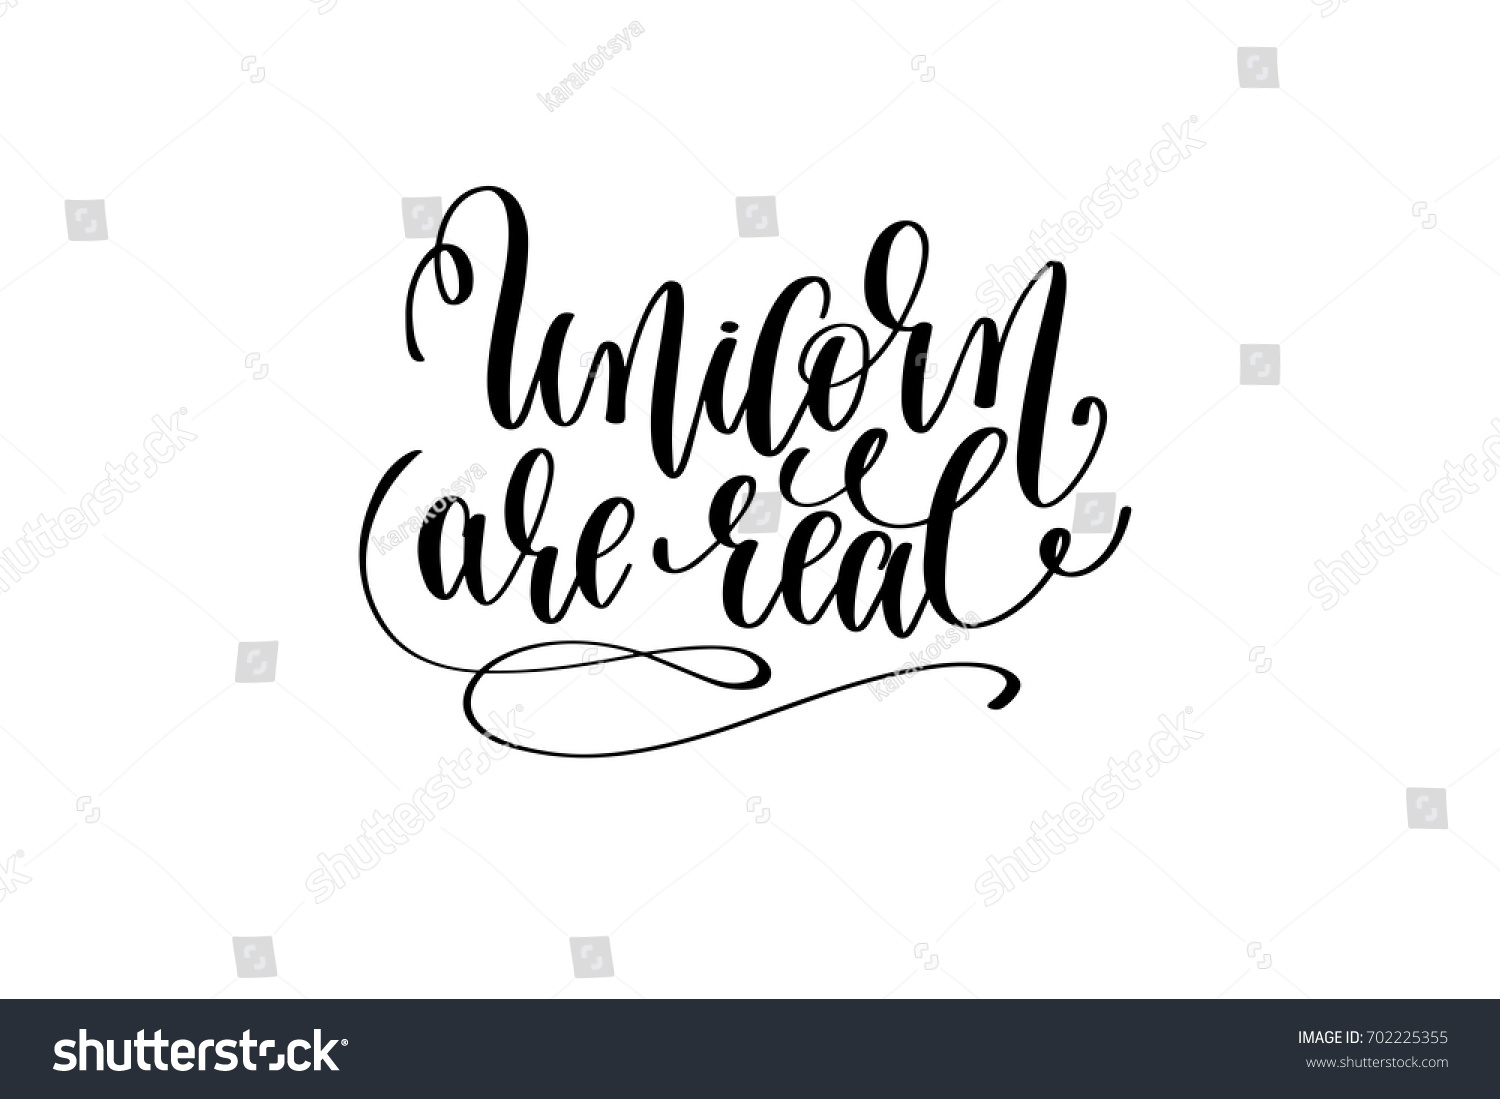 Unicorn real black white handwritten lettering stock